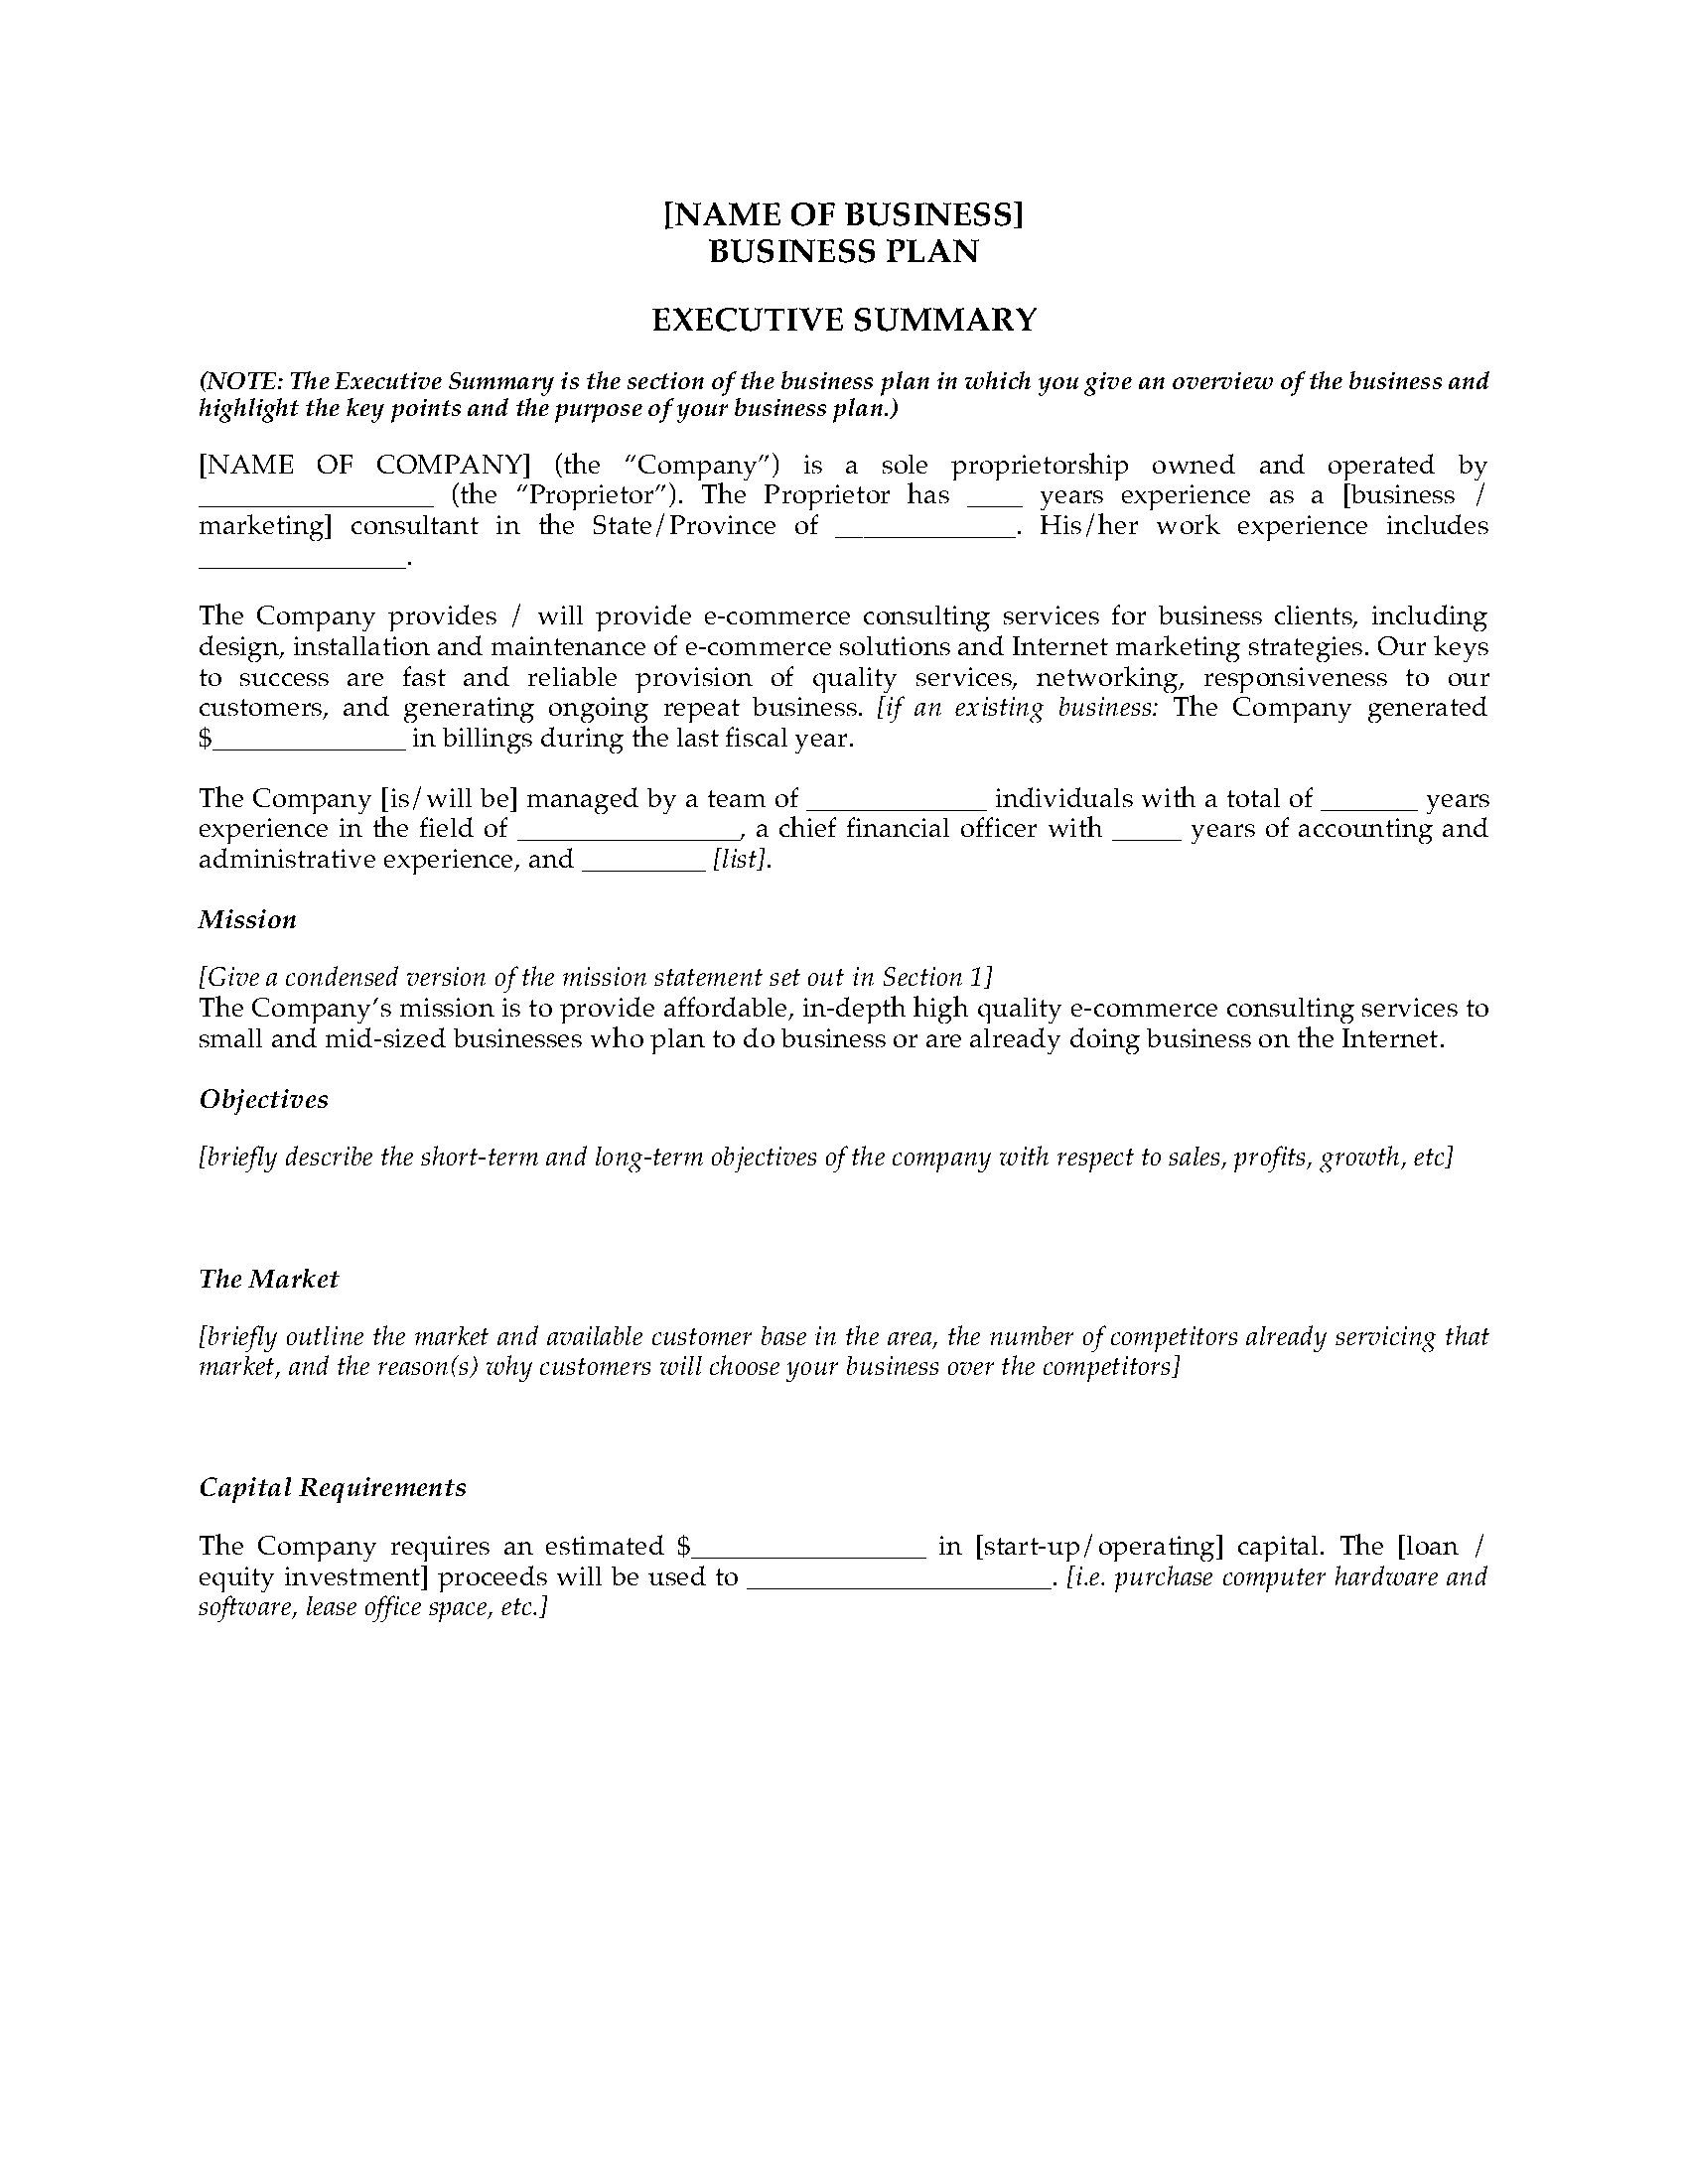 business plan template for consulting firm - e commerce consultant business plan legal forms and